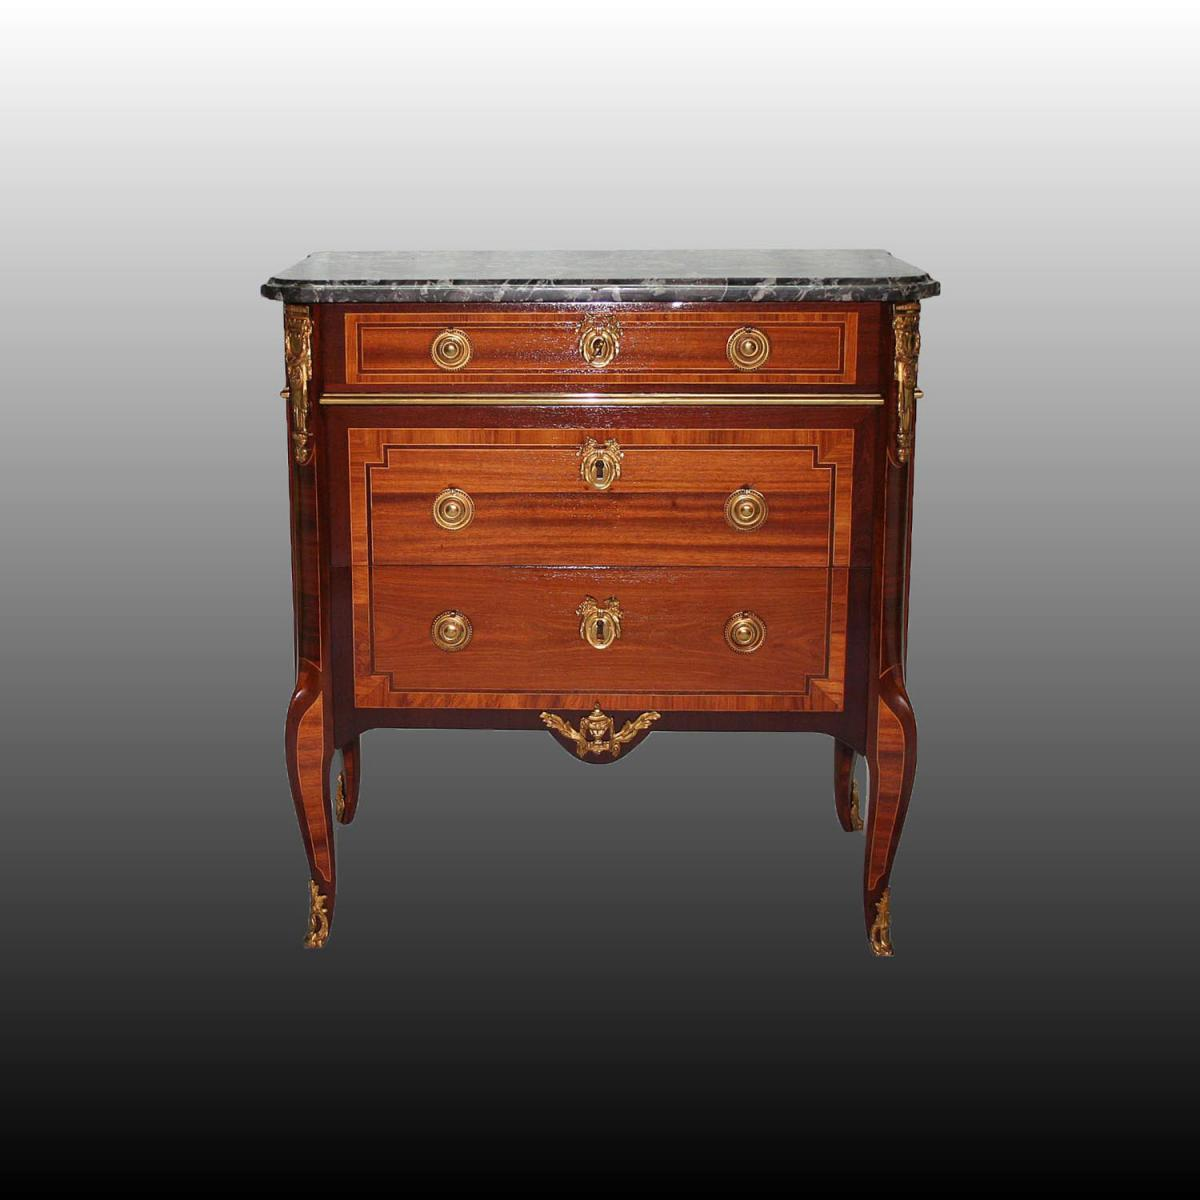 Commode D'époque Transition